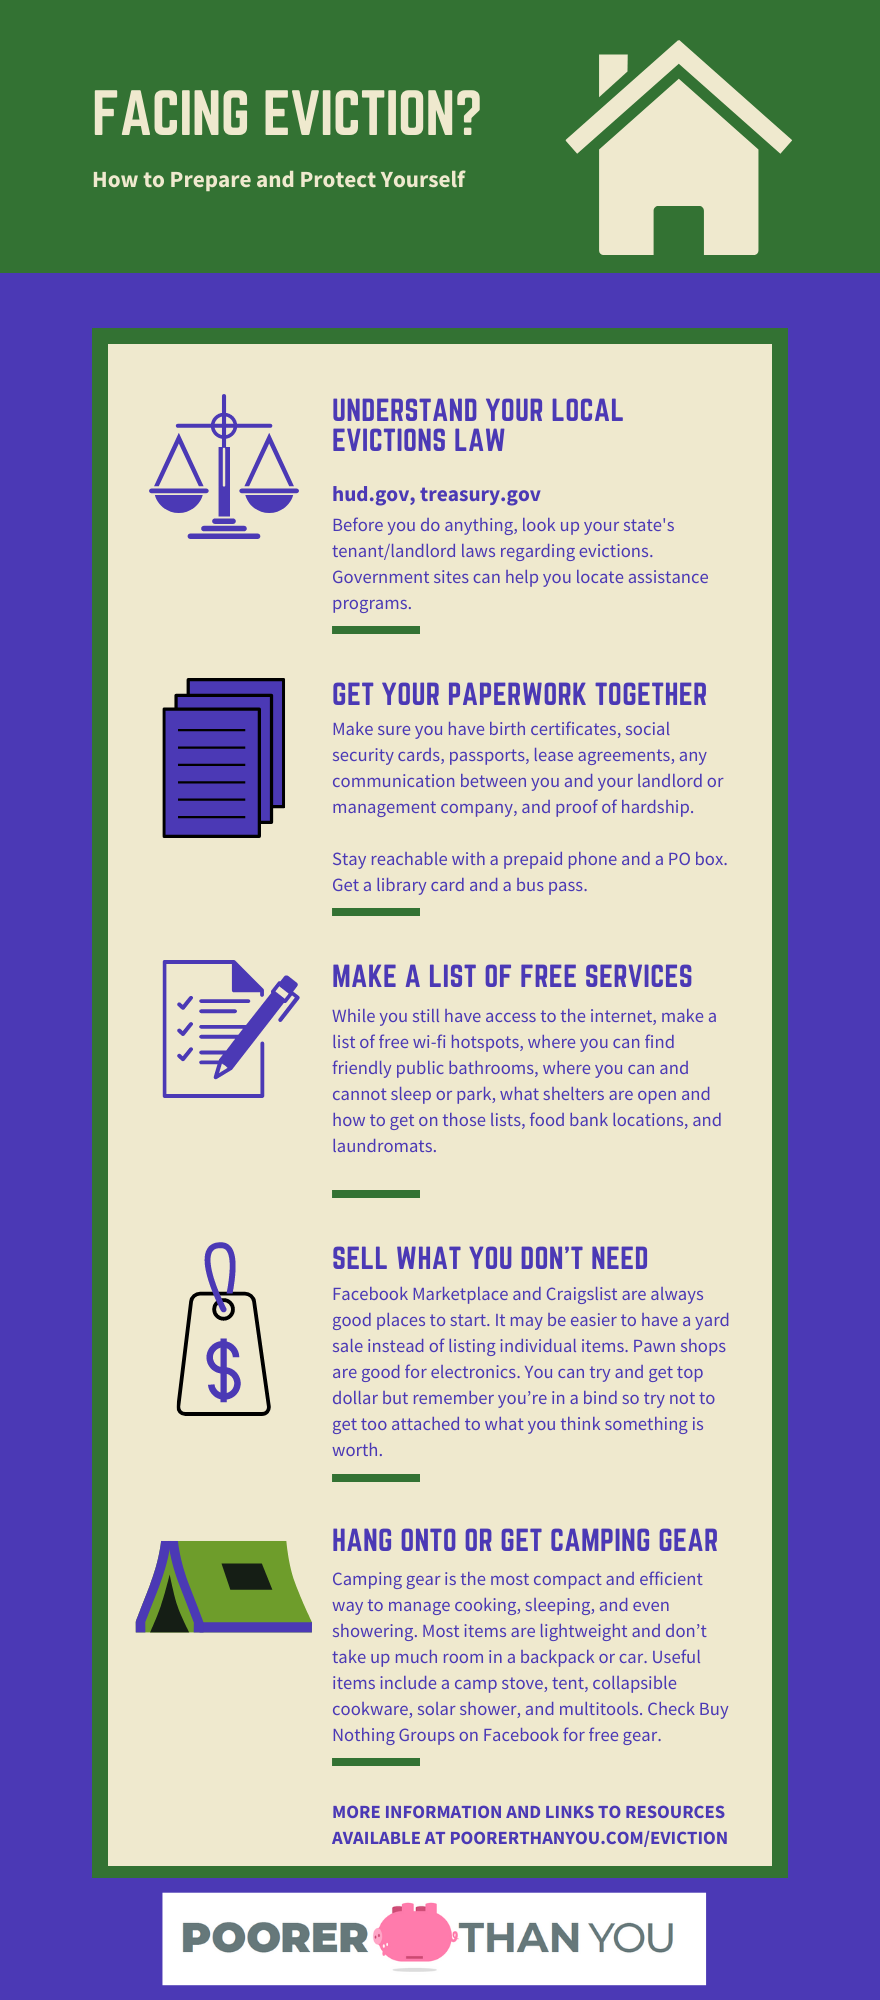 Facing Eviction? Infographic of steps to take.